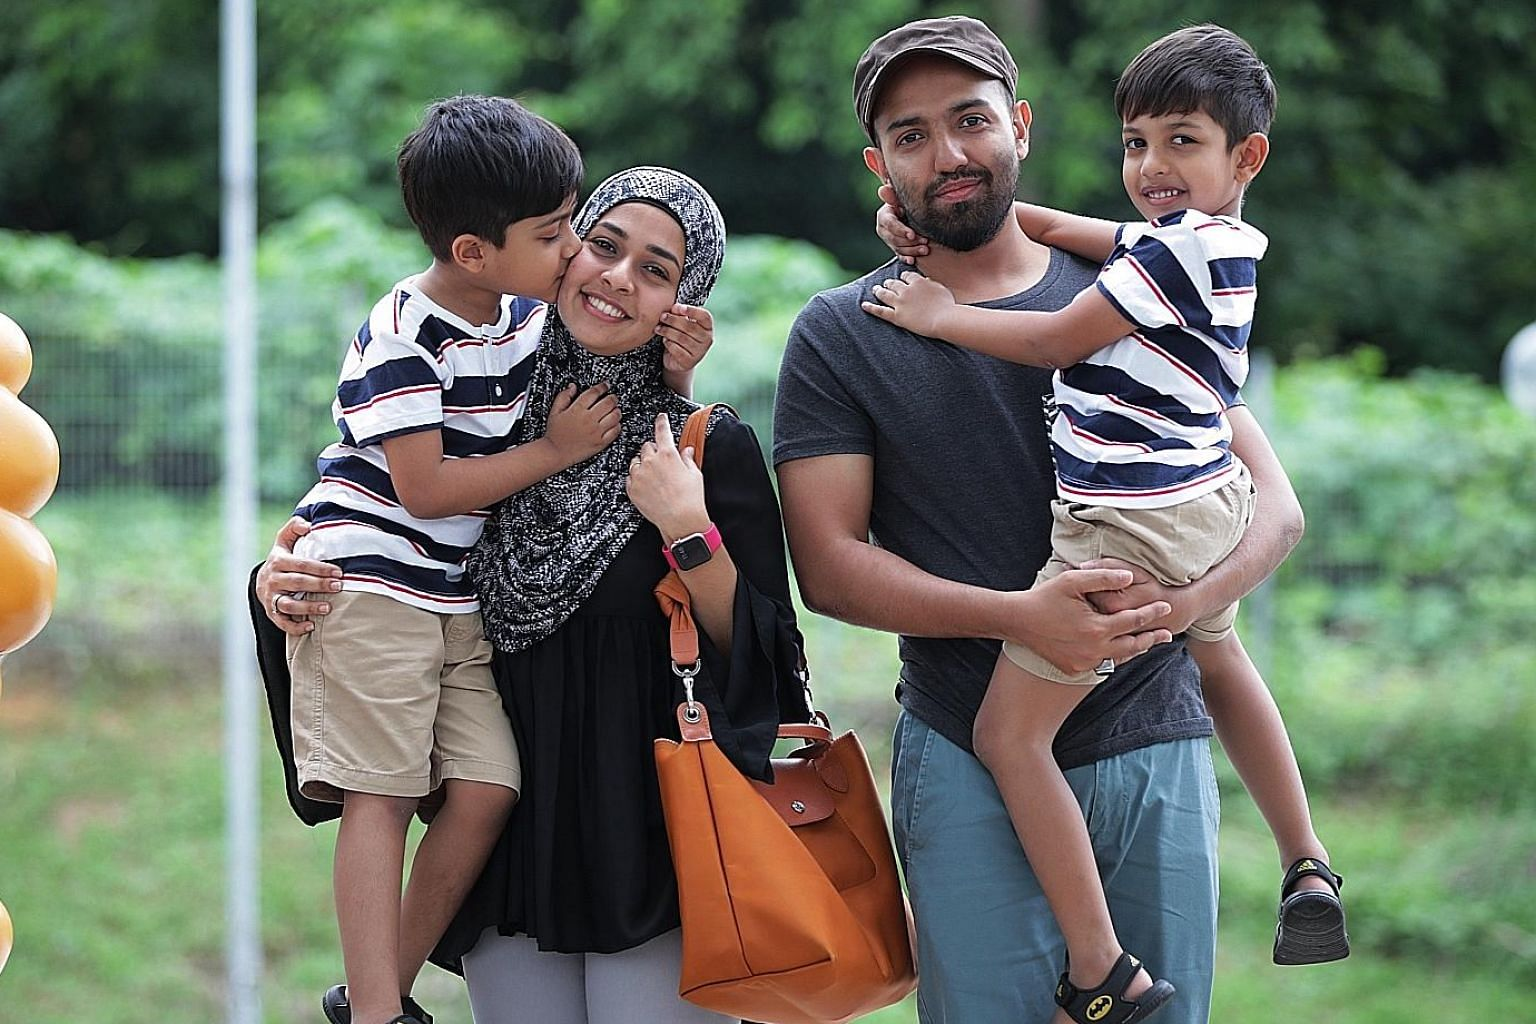 Housewife Aswin Jamee Mohamed Ameerdin and her husband, Mr Mohamed Azhar, with their sons, Ahmad Irfan (far left) and Ahmad Zishan, beneficiaries of the North West Community Development Council's bursary programme for pre-schoolers. ST PHOTO: GIN TAY